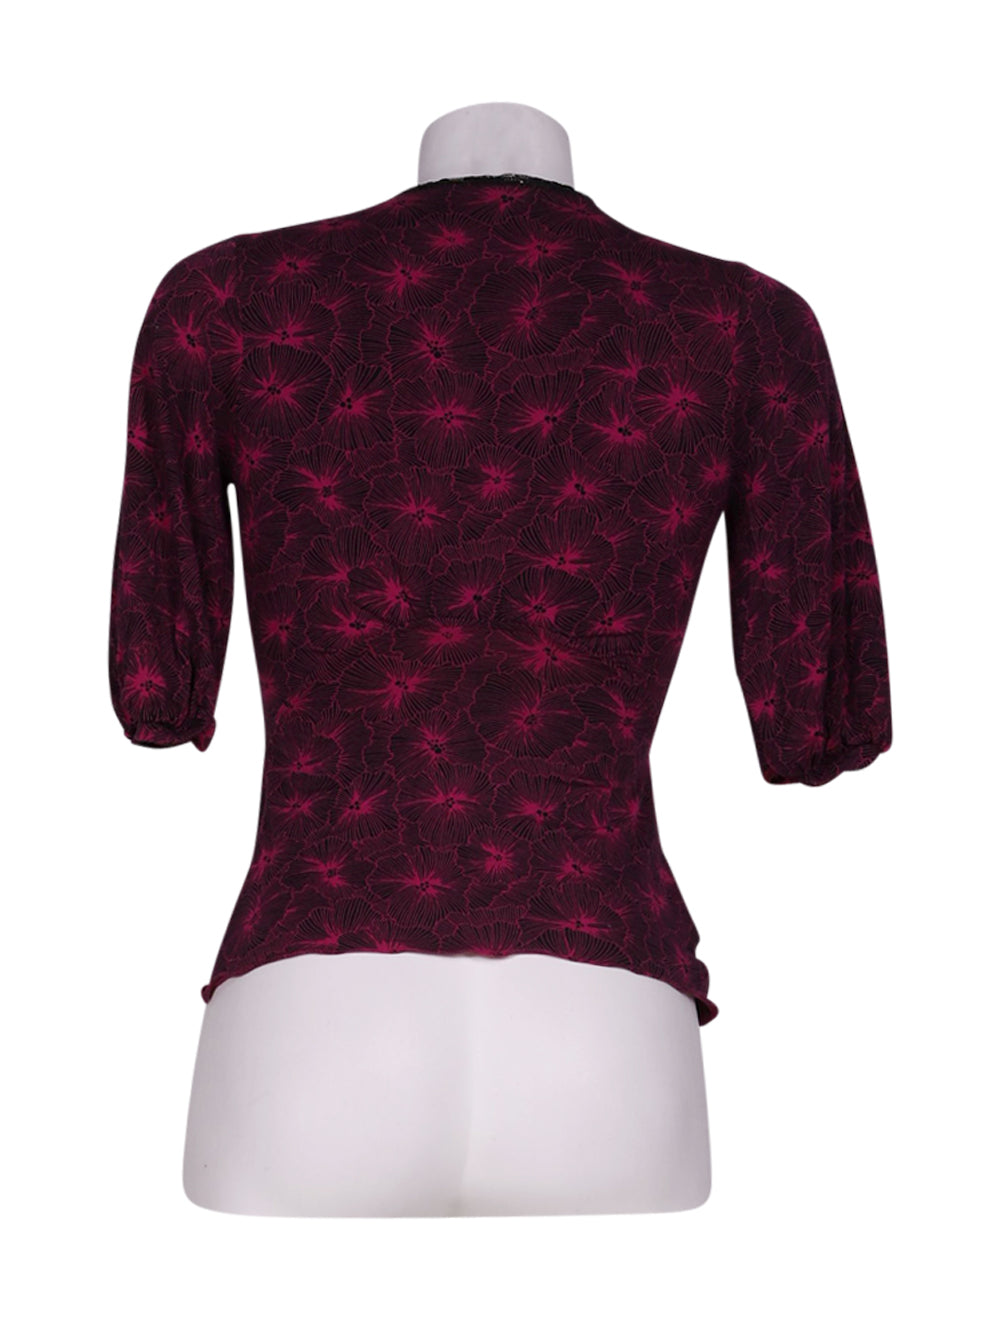 Back photo of Preloved ungaro fuchsia Violet Woman's long sleeved shirt - size 8/S